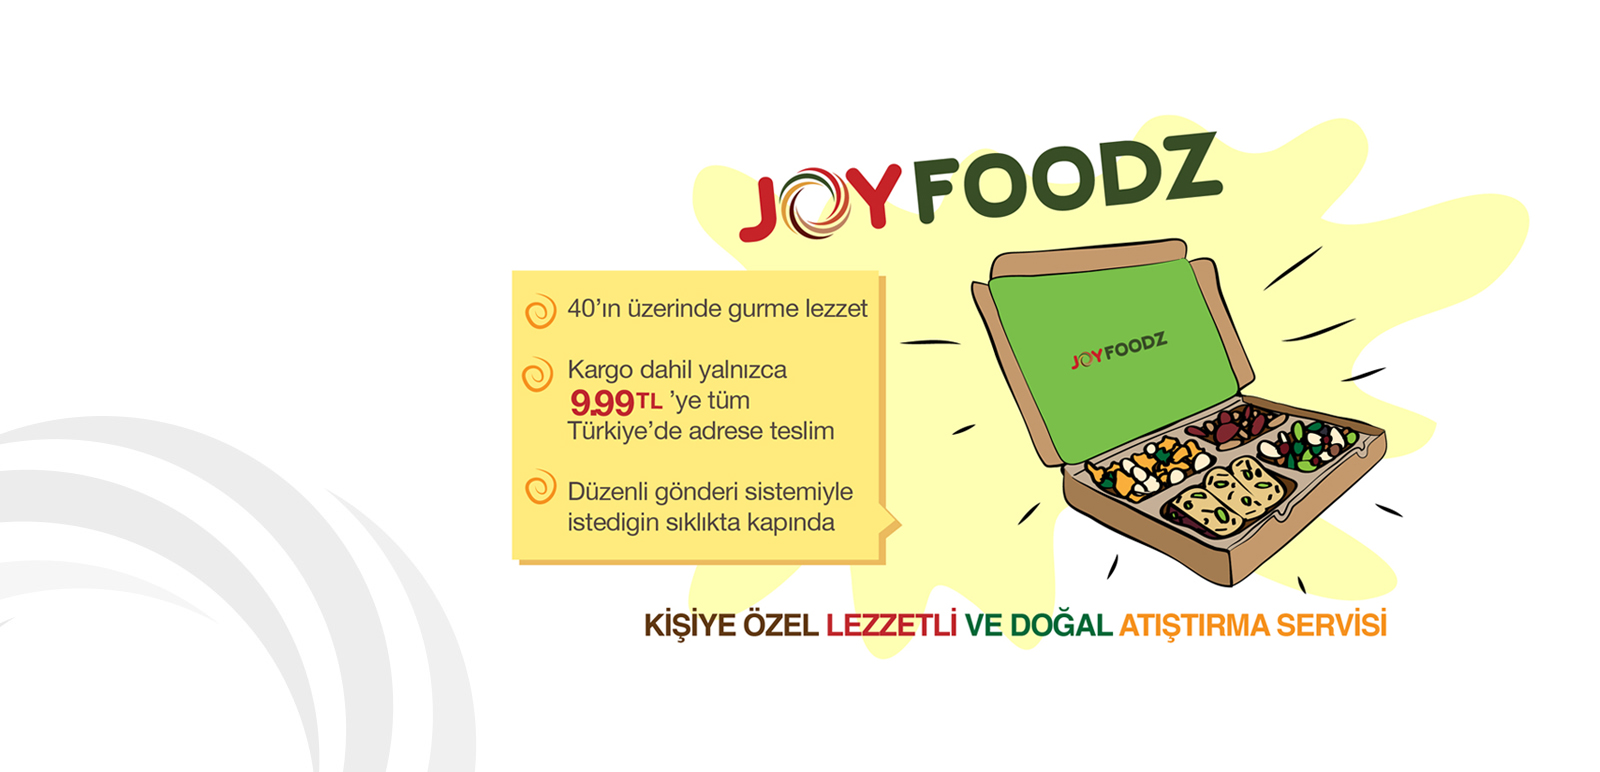 Joyfoodz Animation, Illustration 4